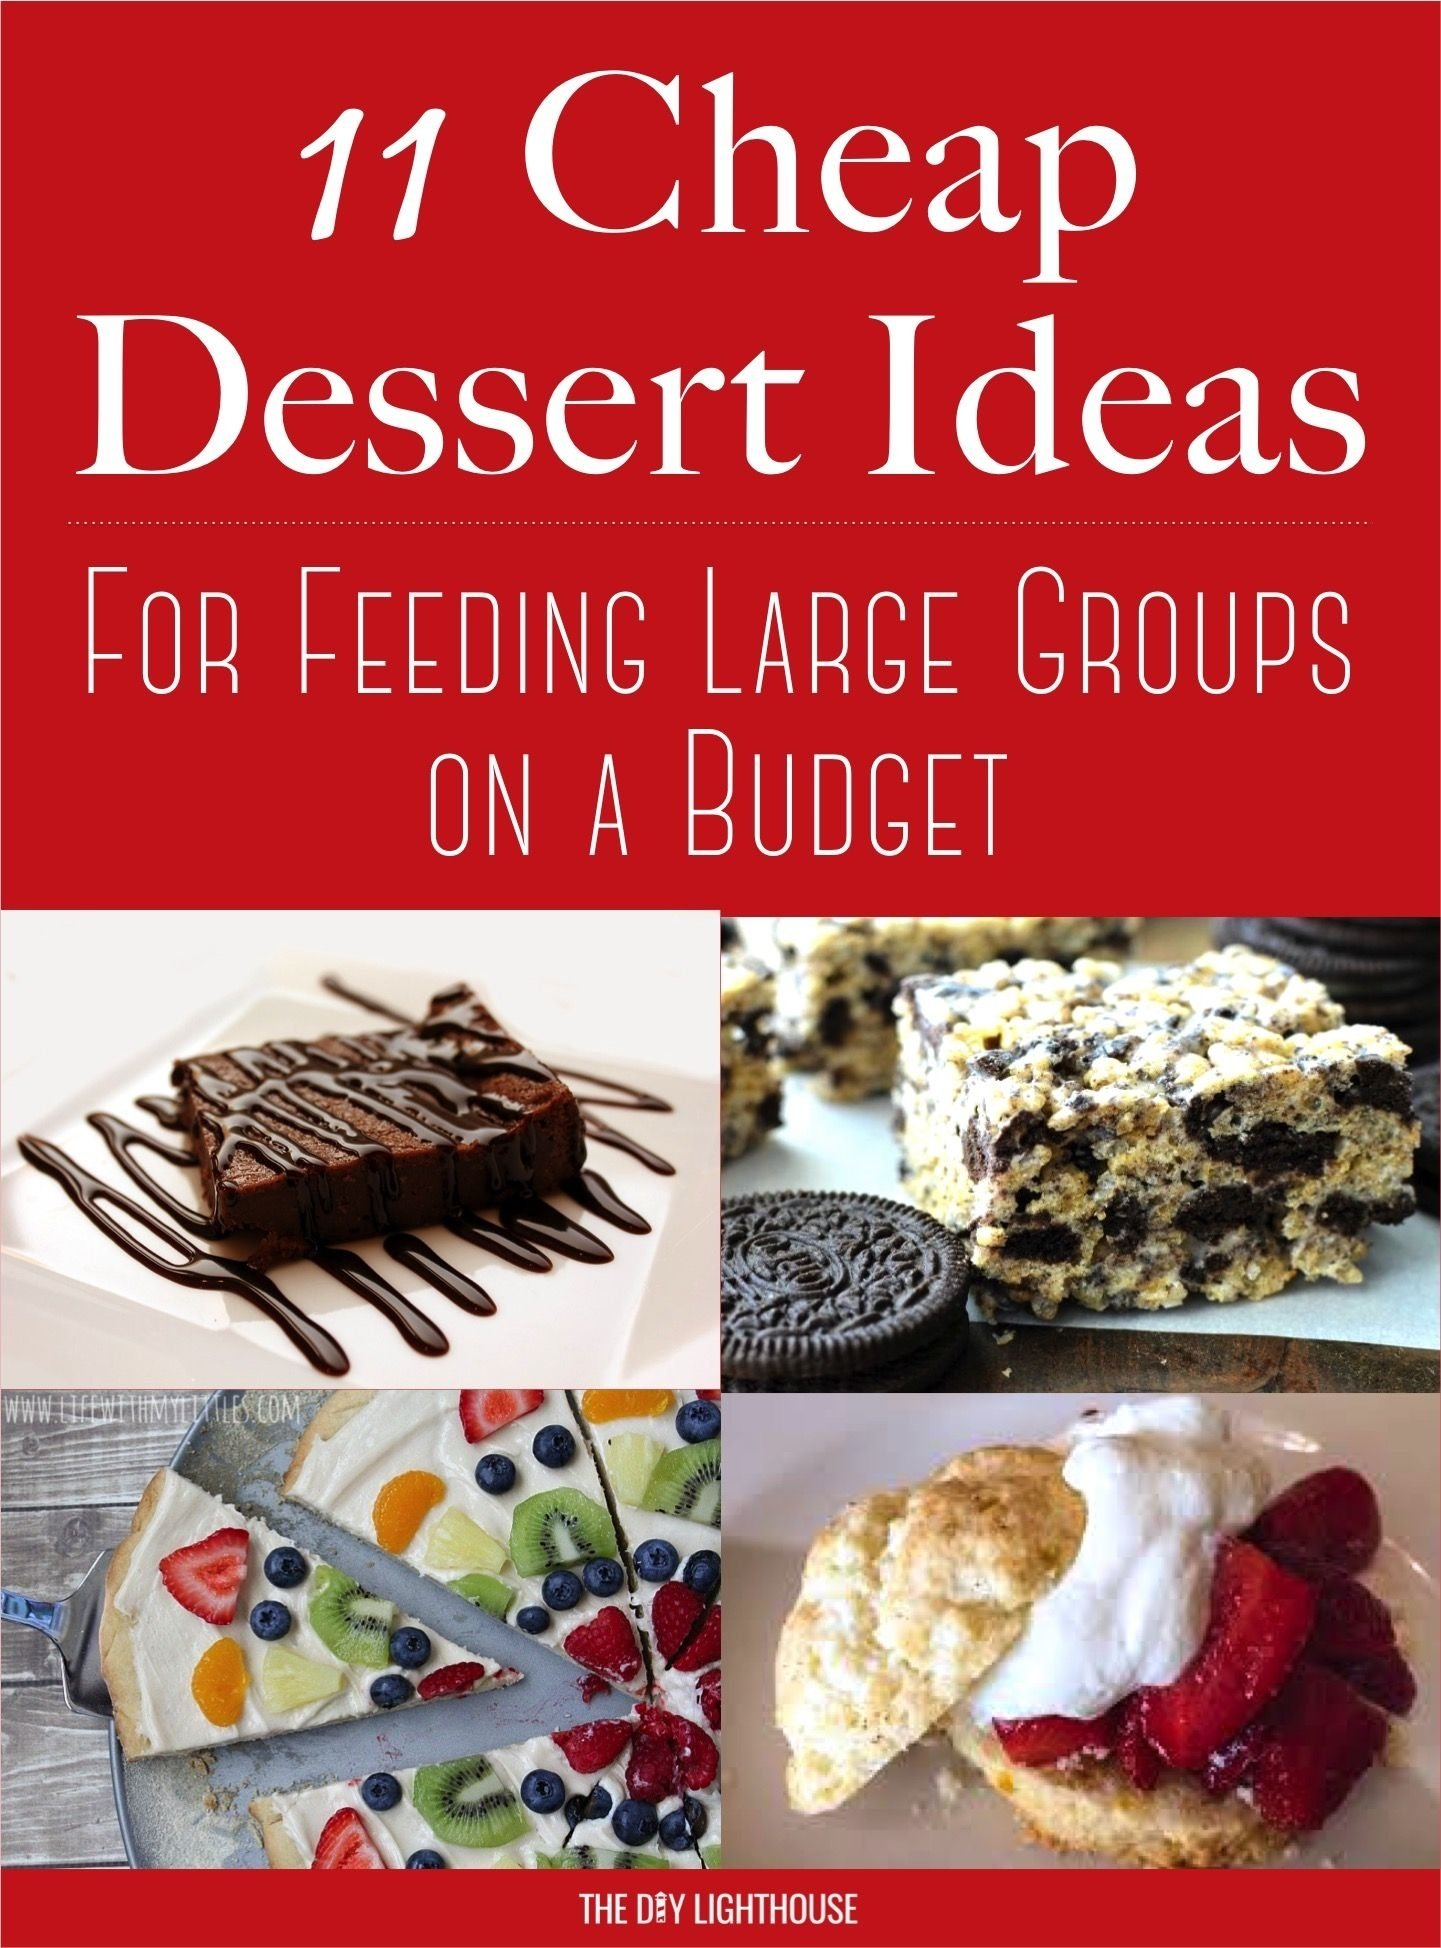 10 Nice Menu Ideas For Large Groups cheap dessert ideas to feed a big group on a budget crowd 2021